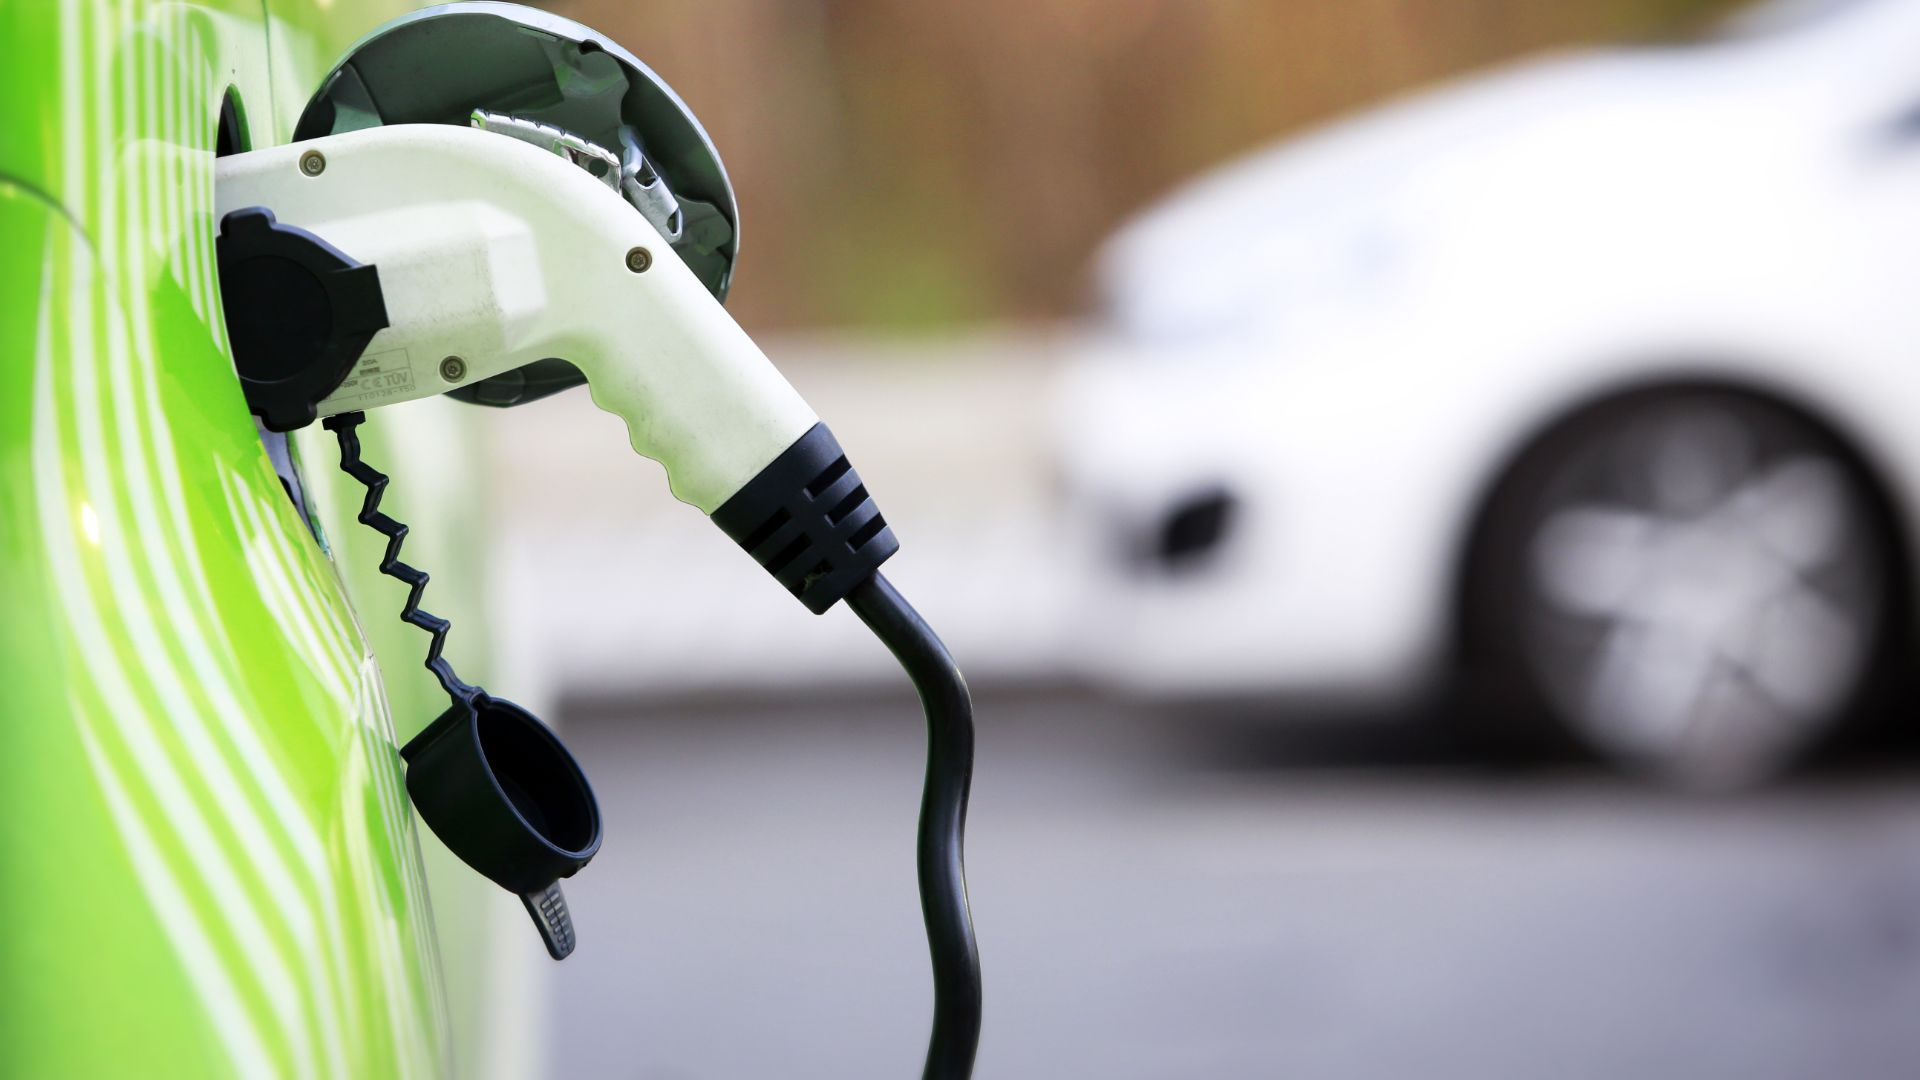 petrol and diesel ban could be brought forward to 2035